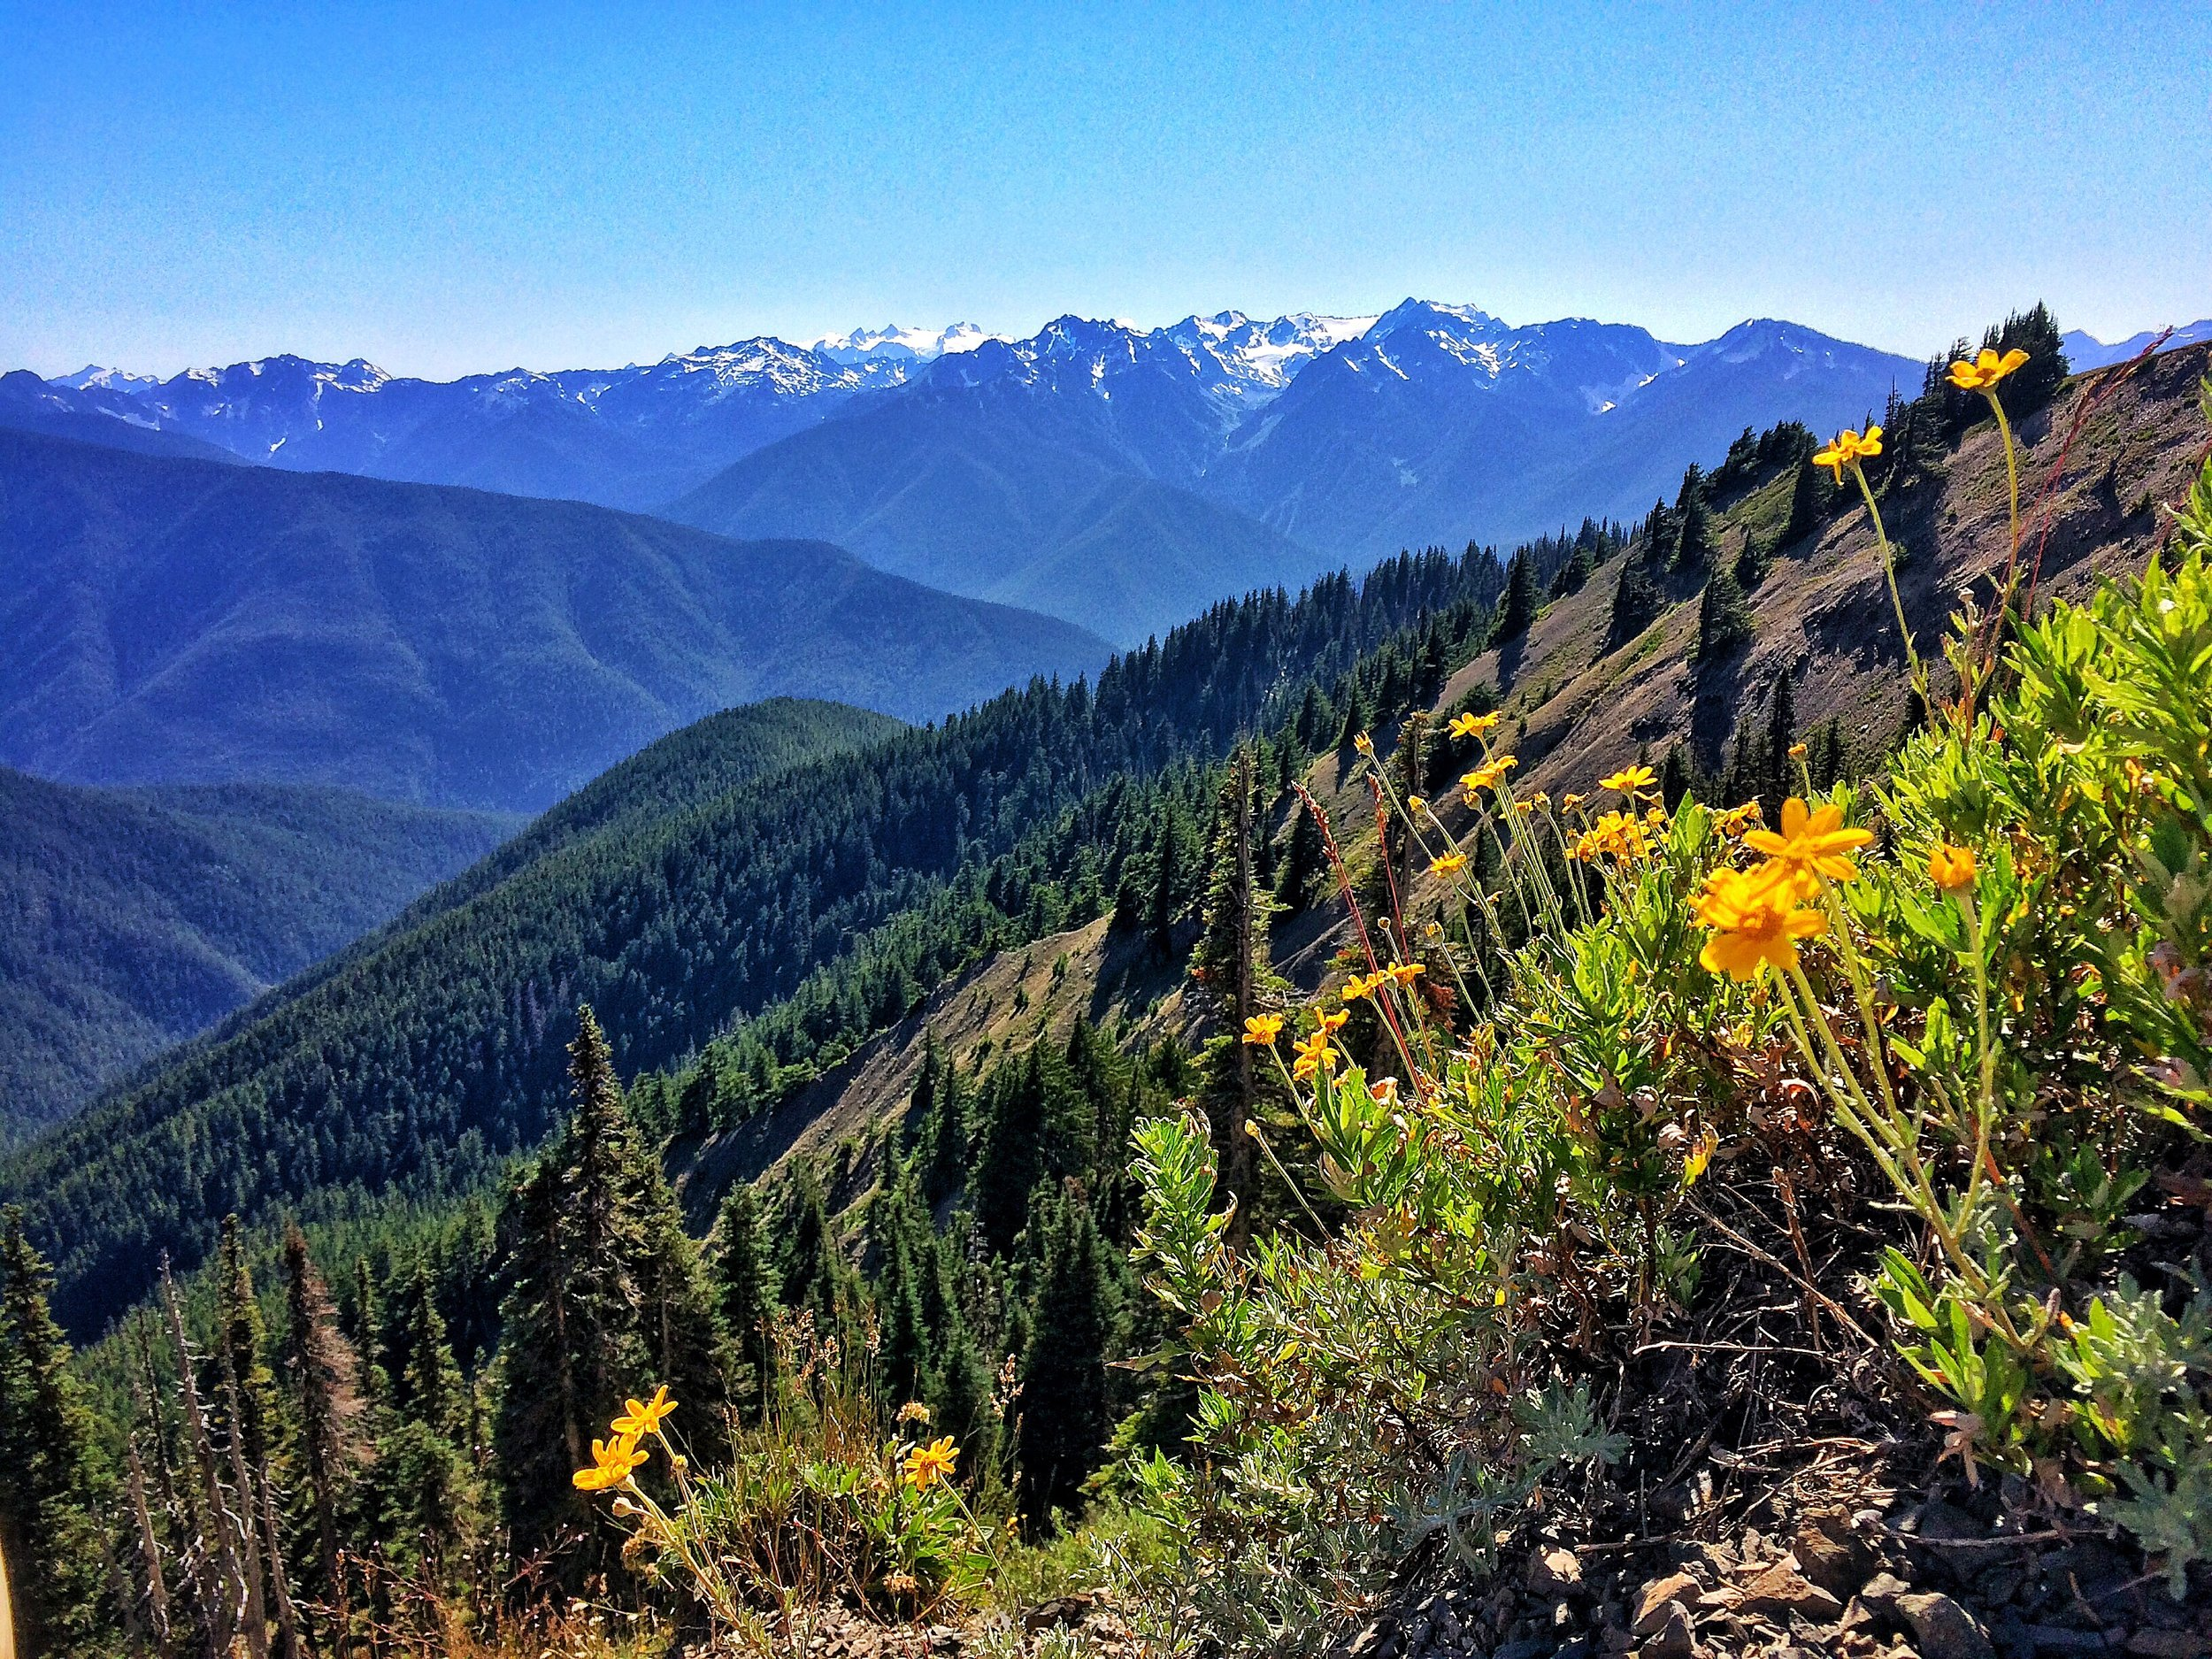 With contiguous National Forest land and National Park land, the Olympic Peninsula has one of the largest areas of biodiversity in the continental United States.